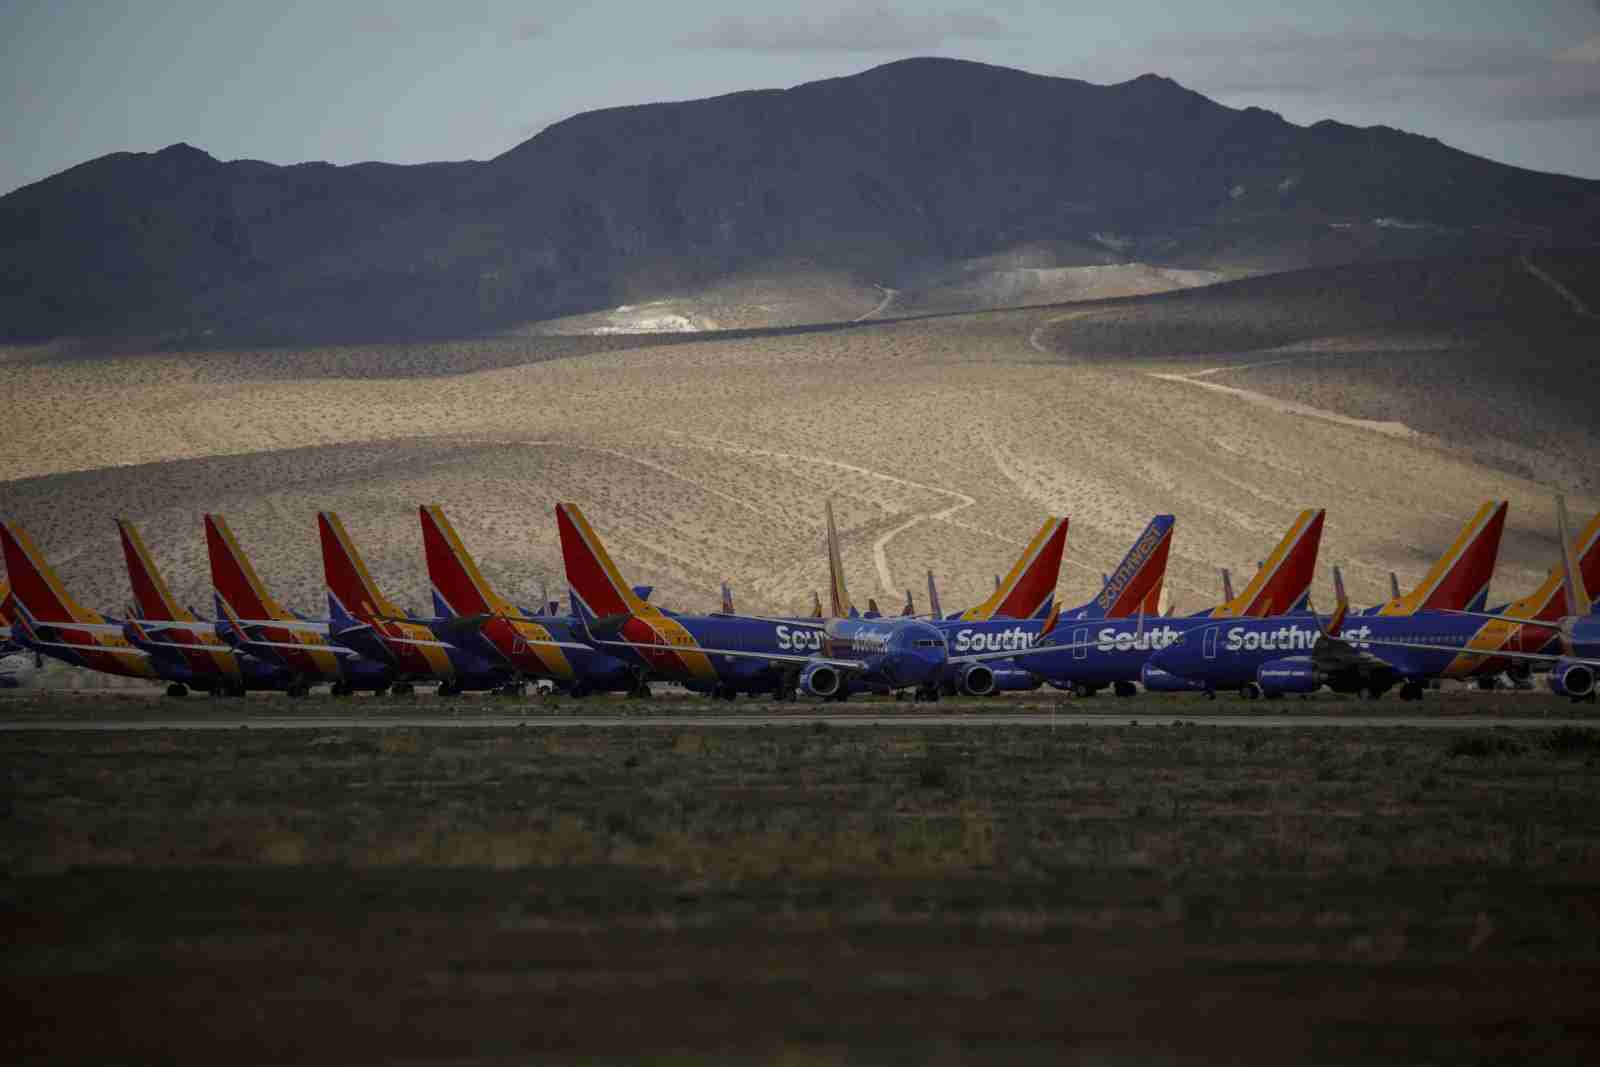 Southwest Airlines Co. aircraft sit parked at a field in Victorville, California, U.S., on Monday, March 23, 2020. Southwest, which carries the most passengers in domestic markets, said it will cut 1,000 daily flights starting Sunday, ahead of a previously planned 20% capacity reduction, because of a rapid drop in near-term demand. (Photo by Patrick T. Fallon/Bloomberg/Getty Images)